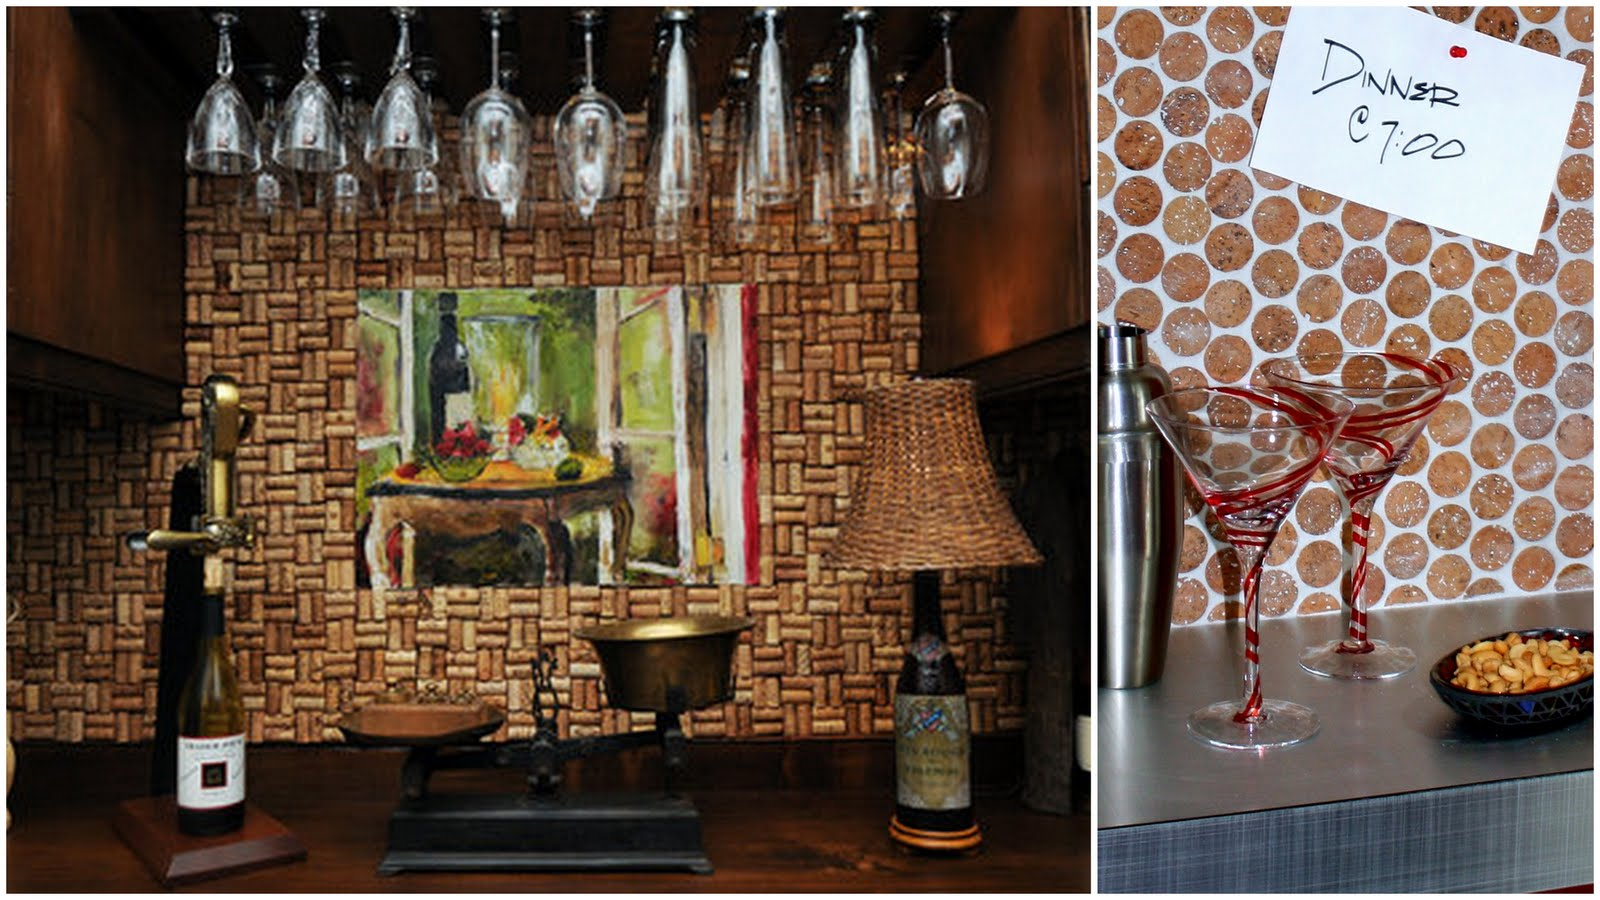 Backsplash with Wine Corks